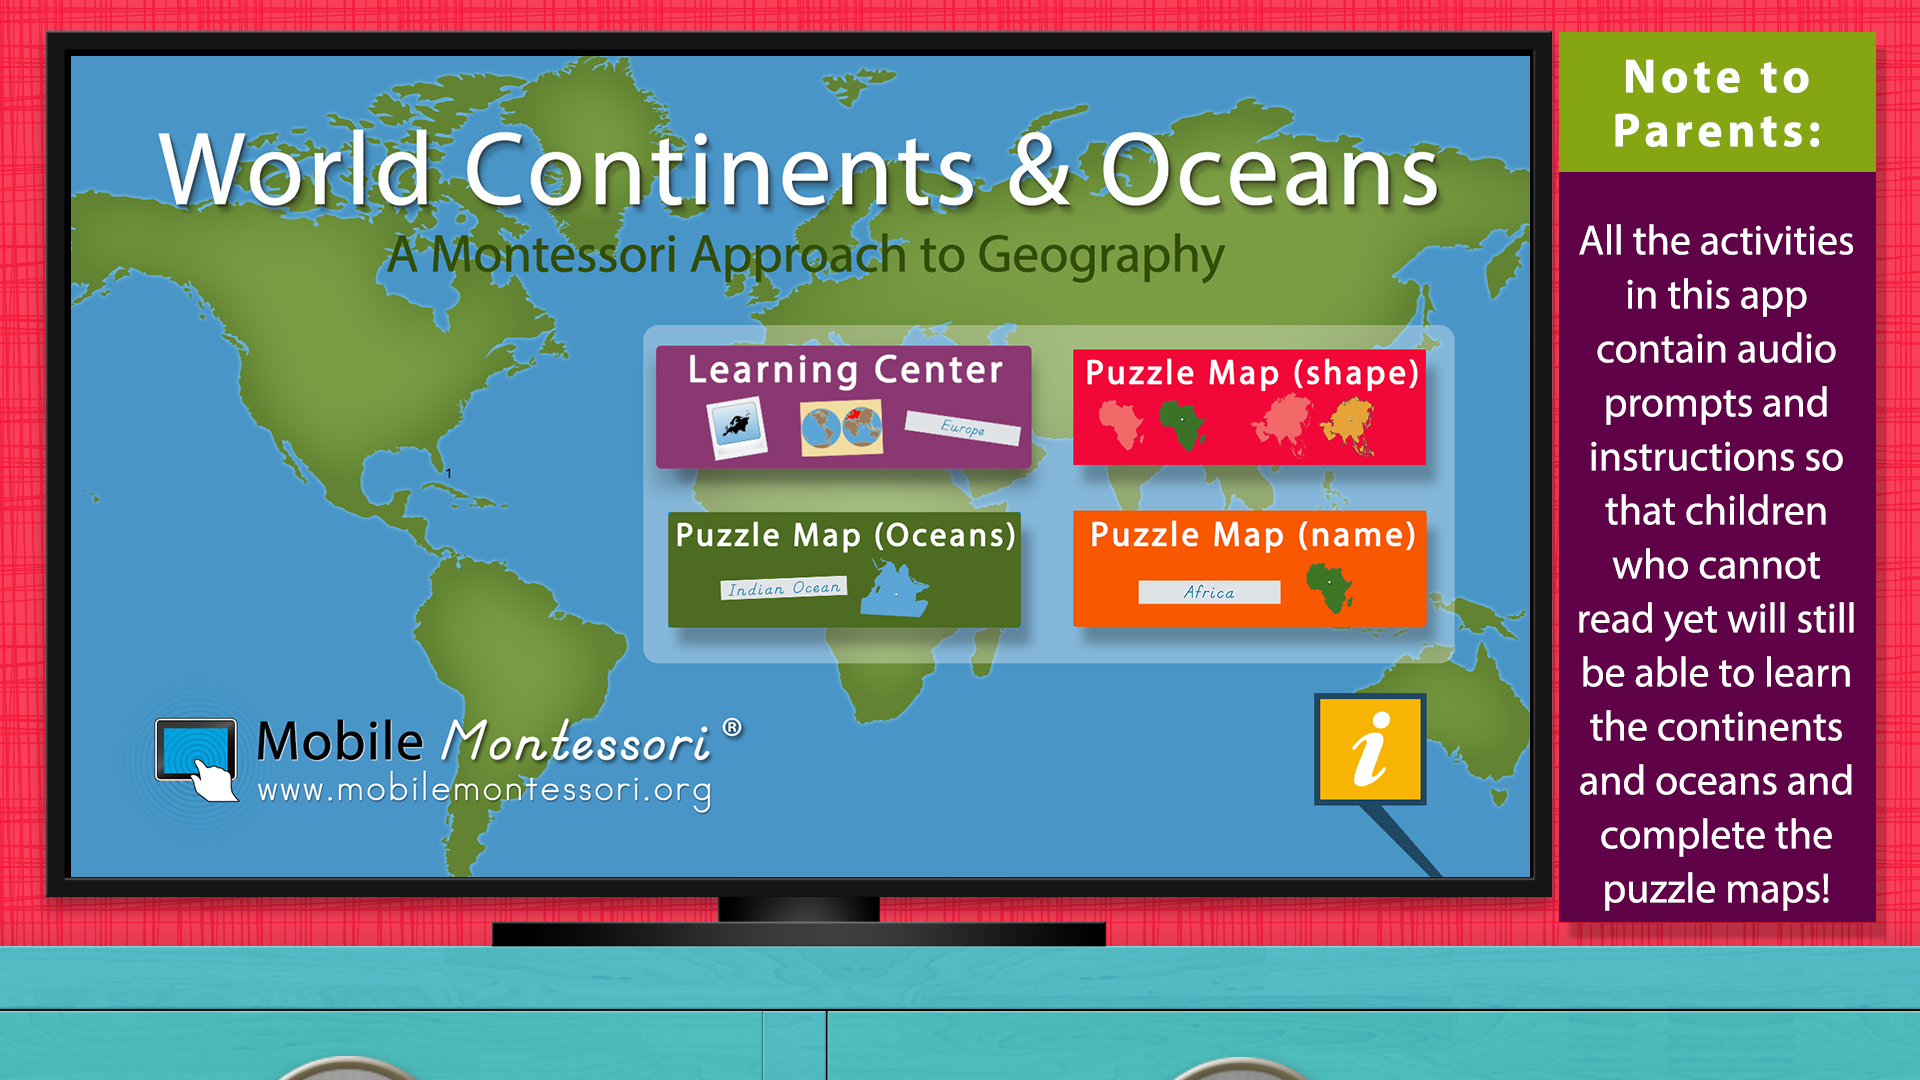 World Continents and Oceans - Geography by Mobile Montessori screenshot 5